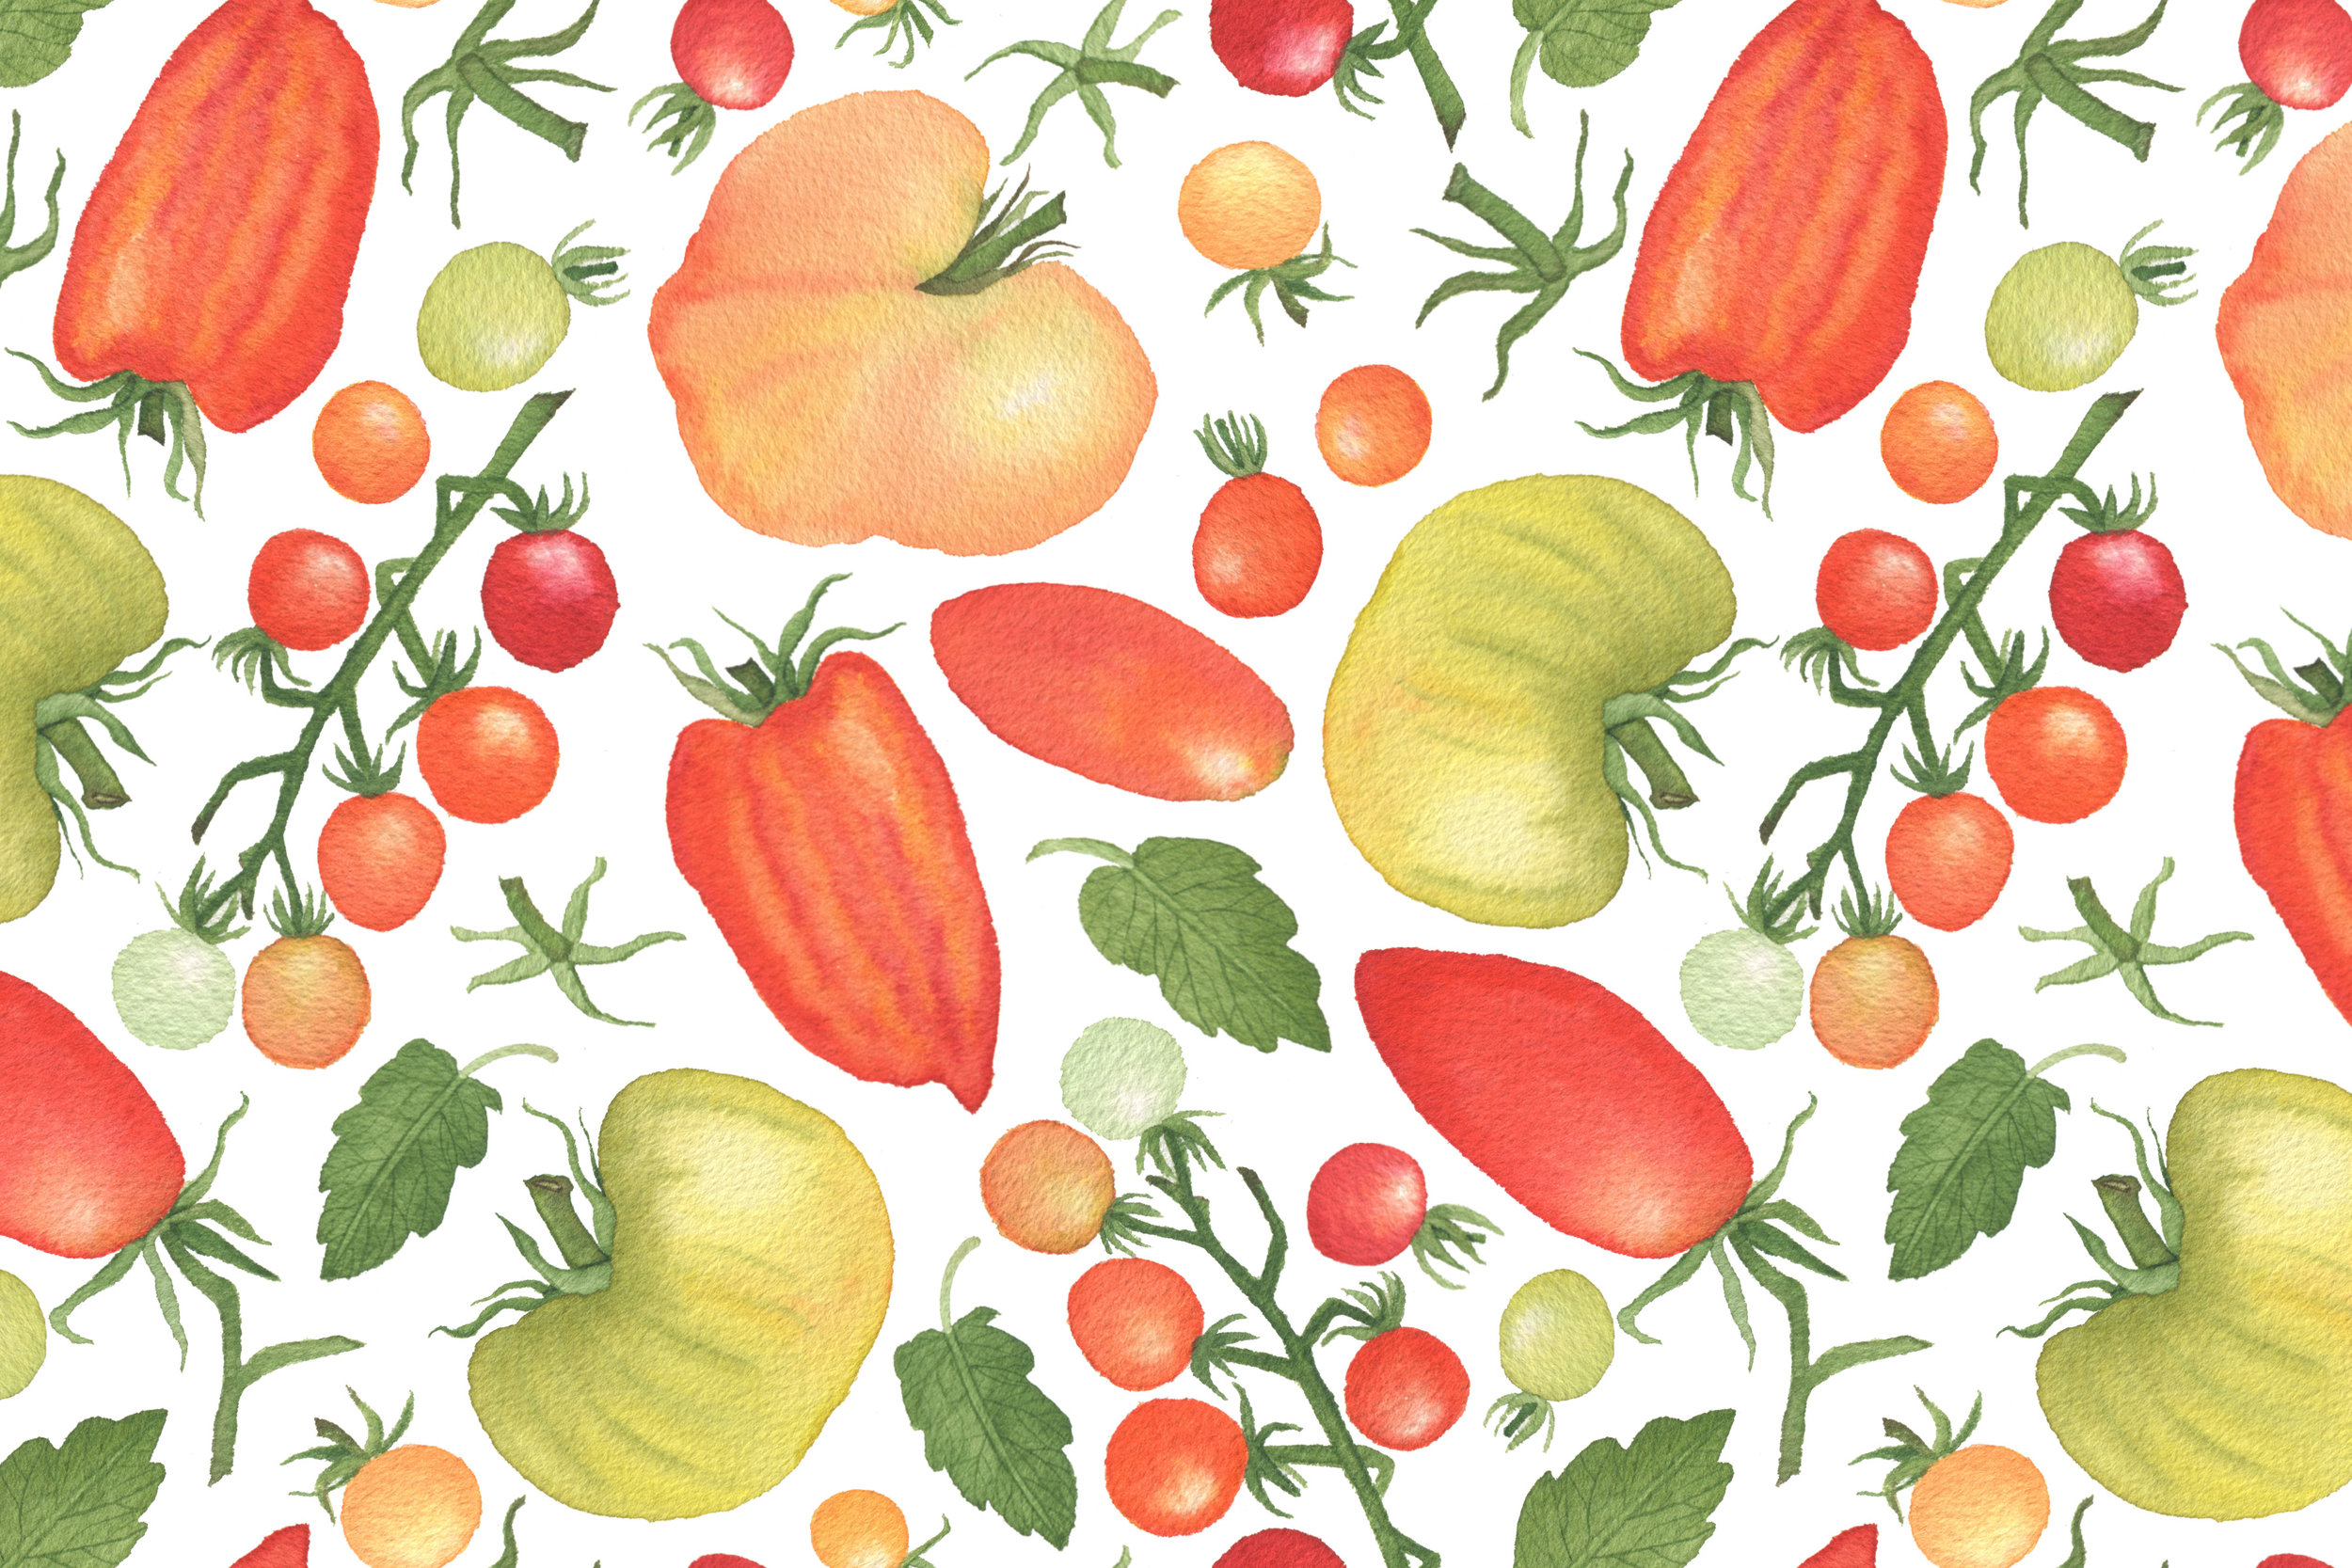 A New Watercolor Pattern of Tomatoes by Anne Butera of My Giant Strawberry